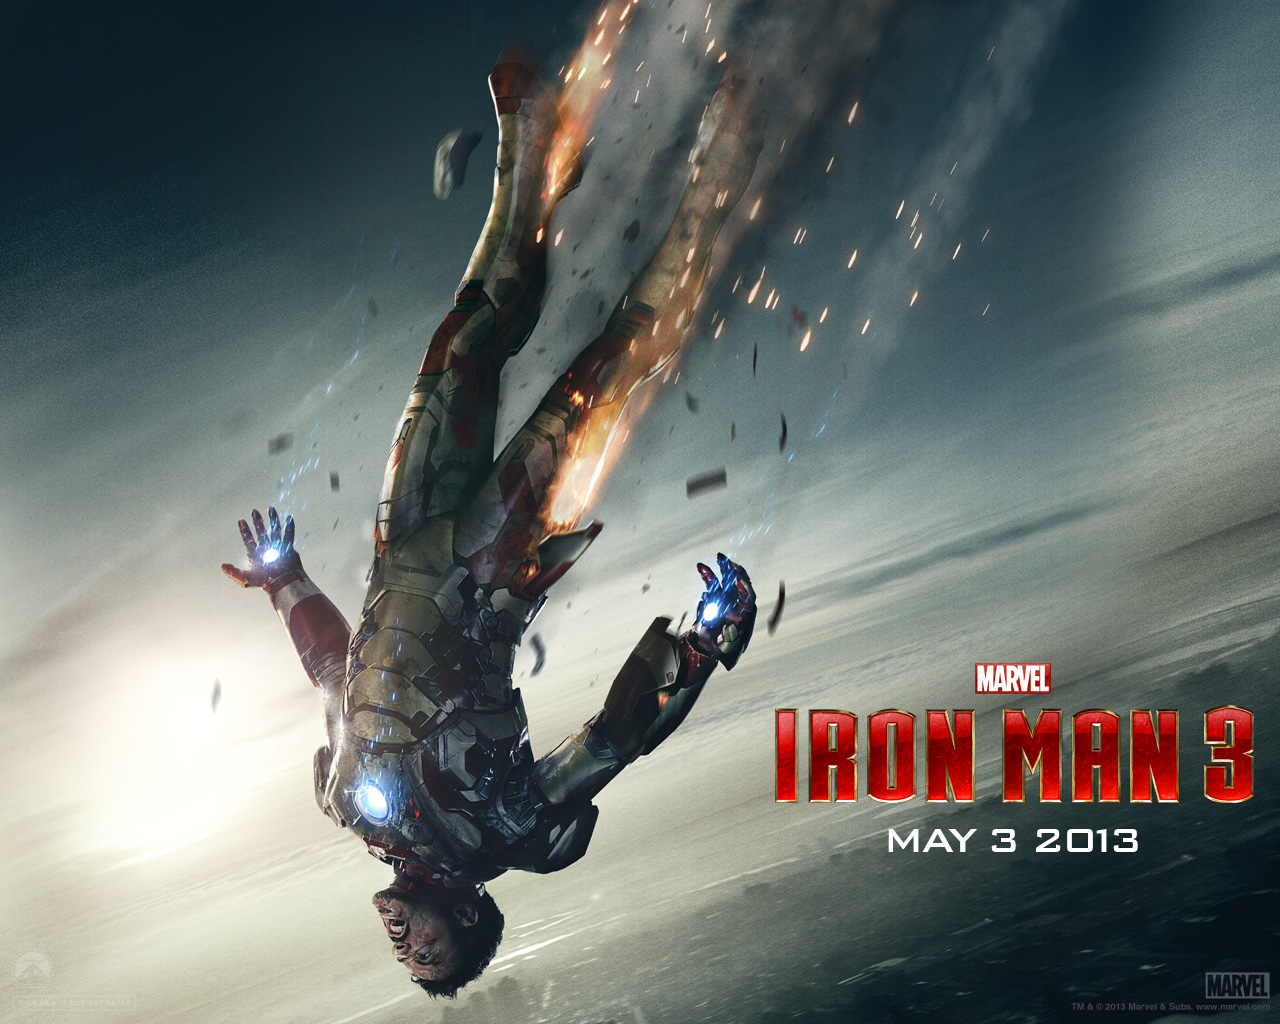 Iron Man 3 wallpaper 1280x1024 005